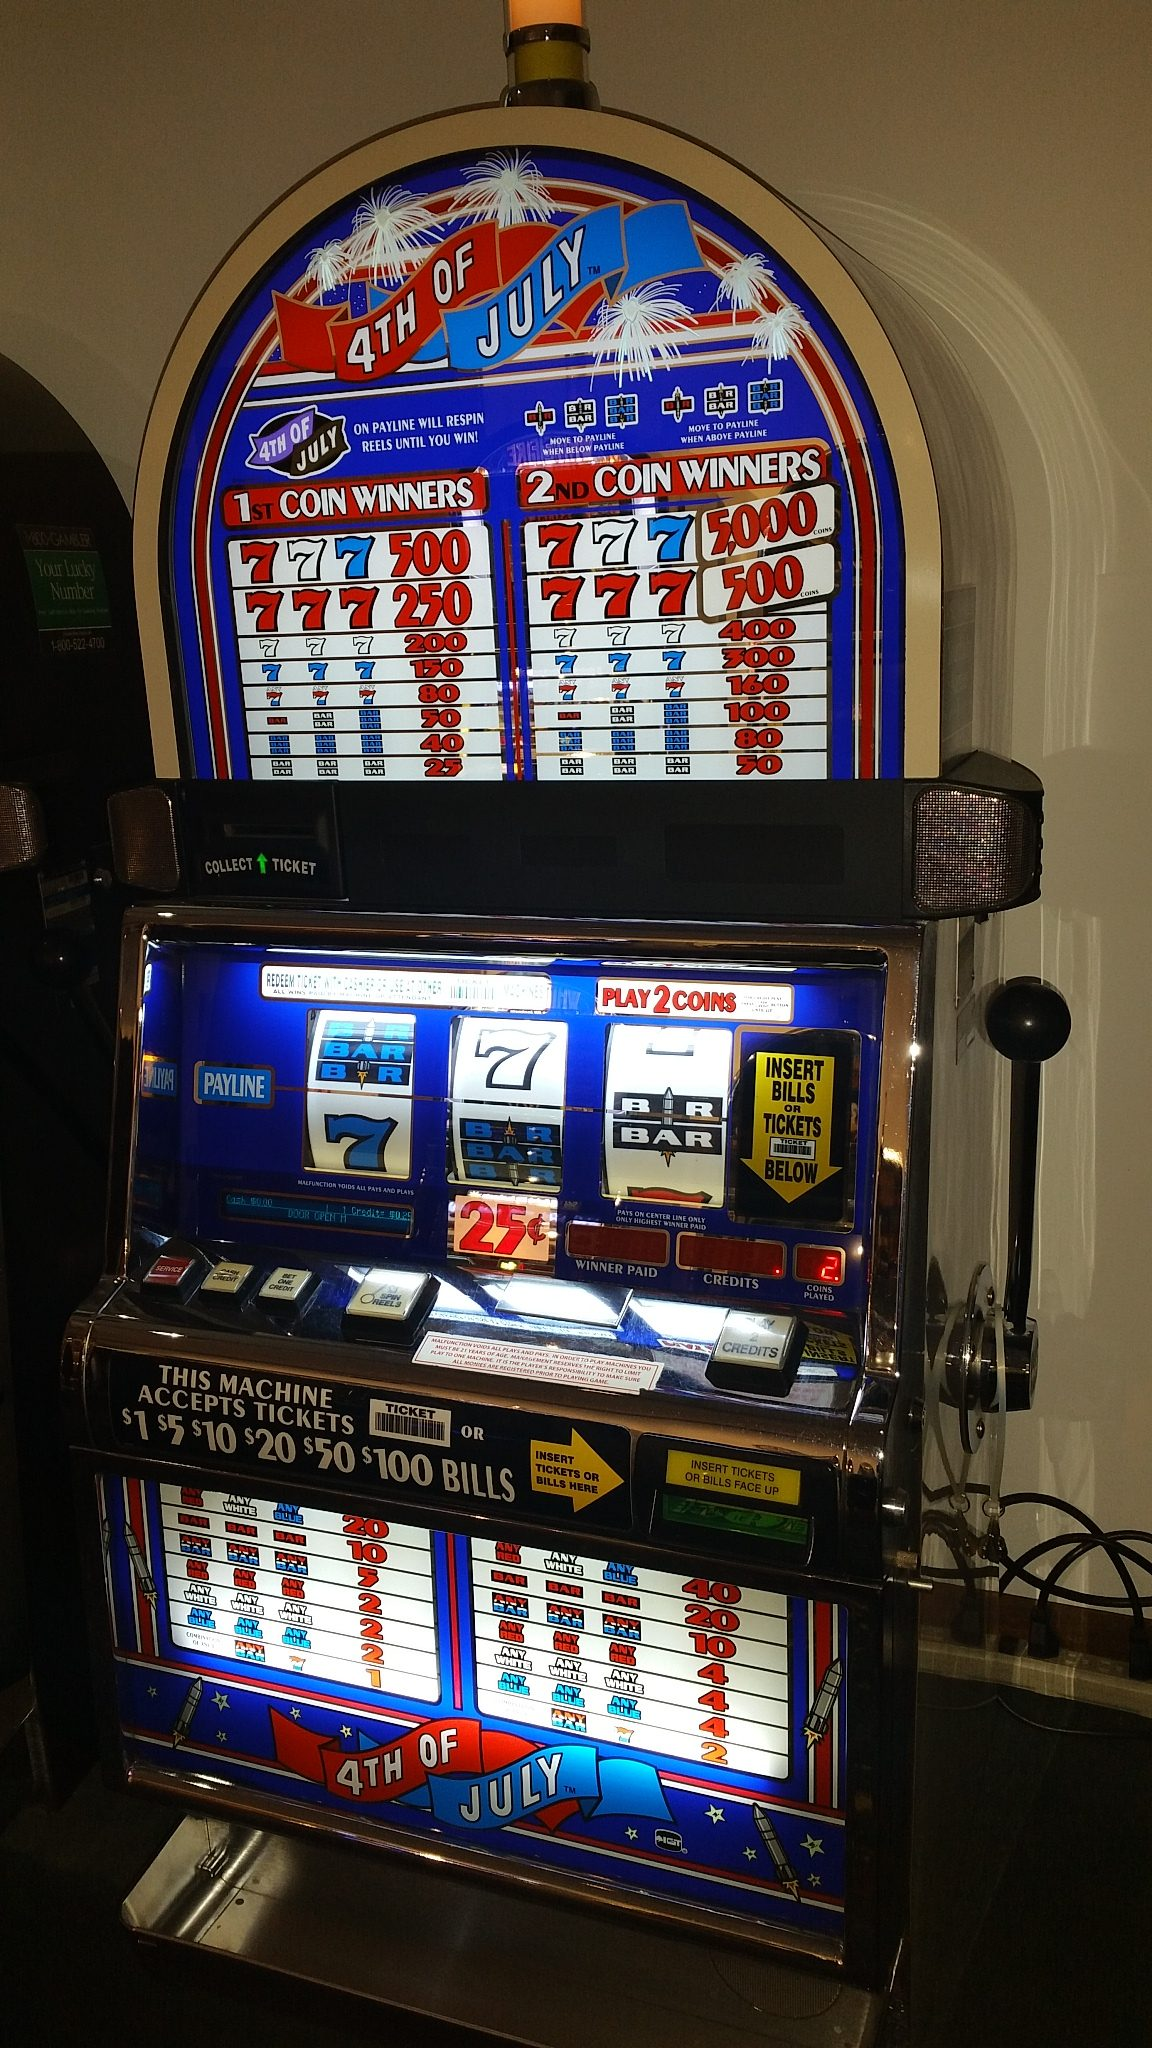 IGT S2000 RED WHITE & Blue 4th of July Bonus Slot Machine